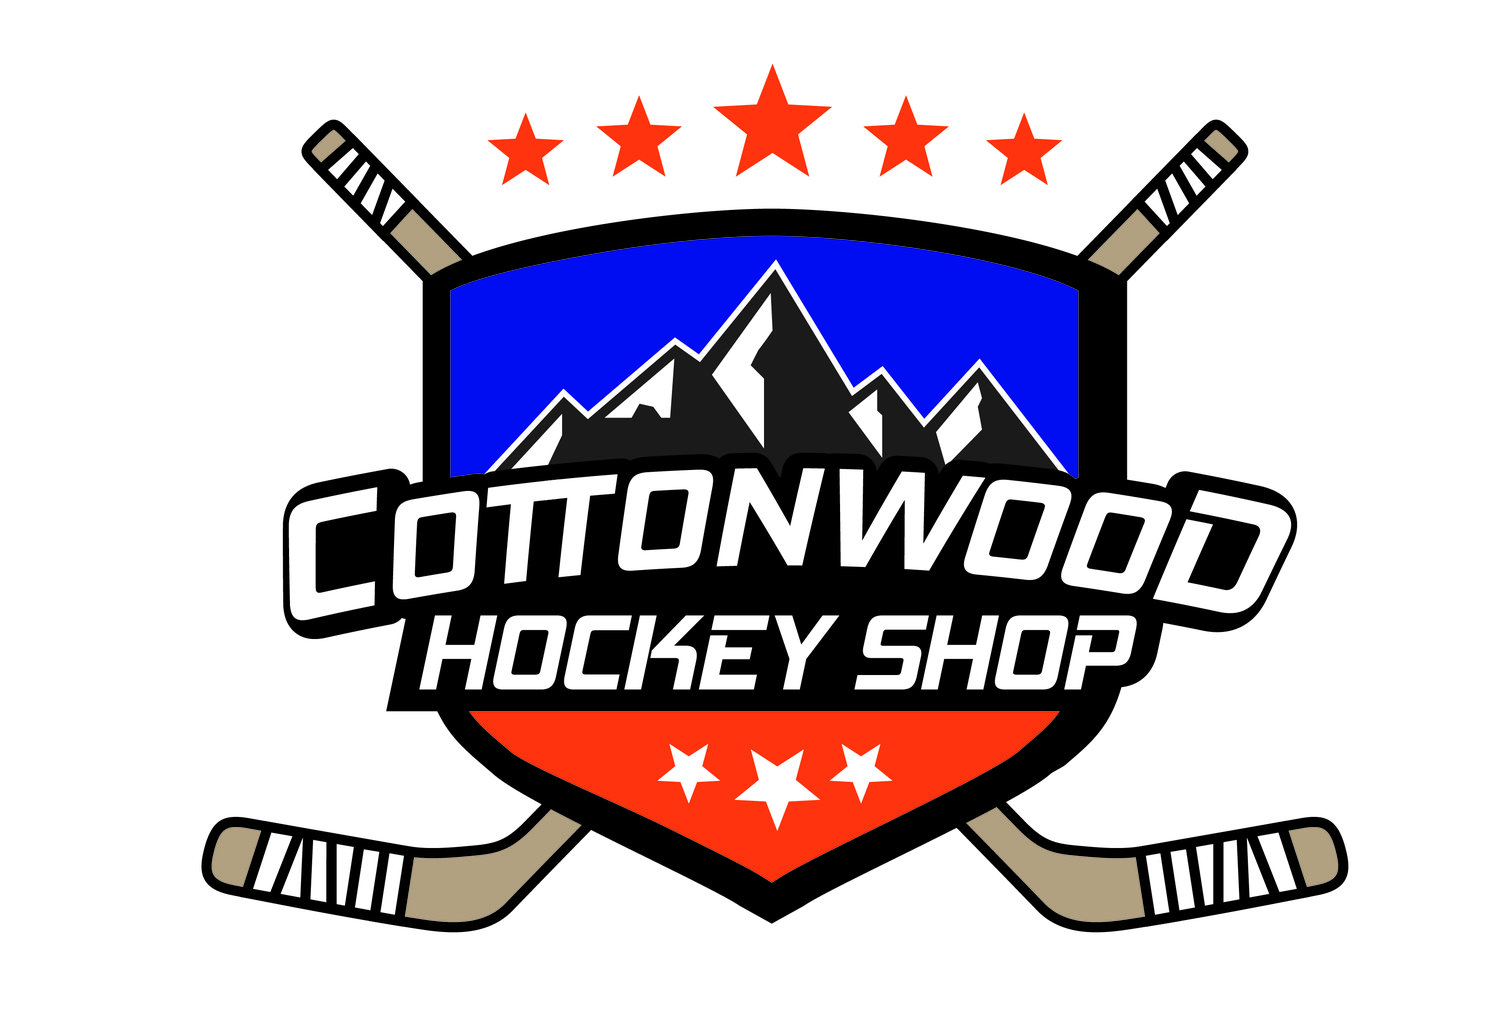 Cottonwood Hockey Shop